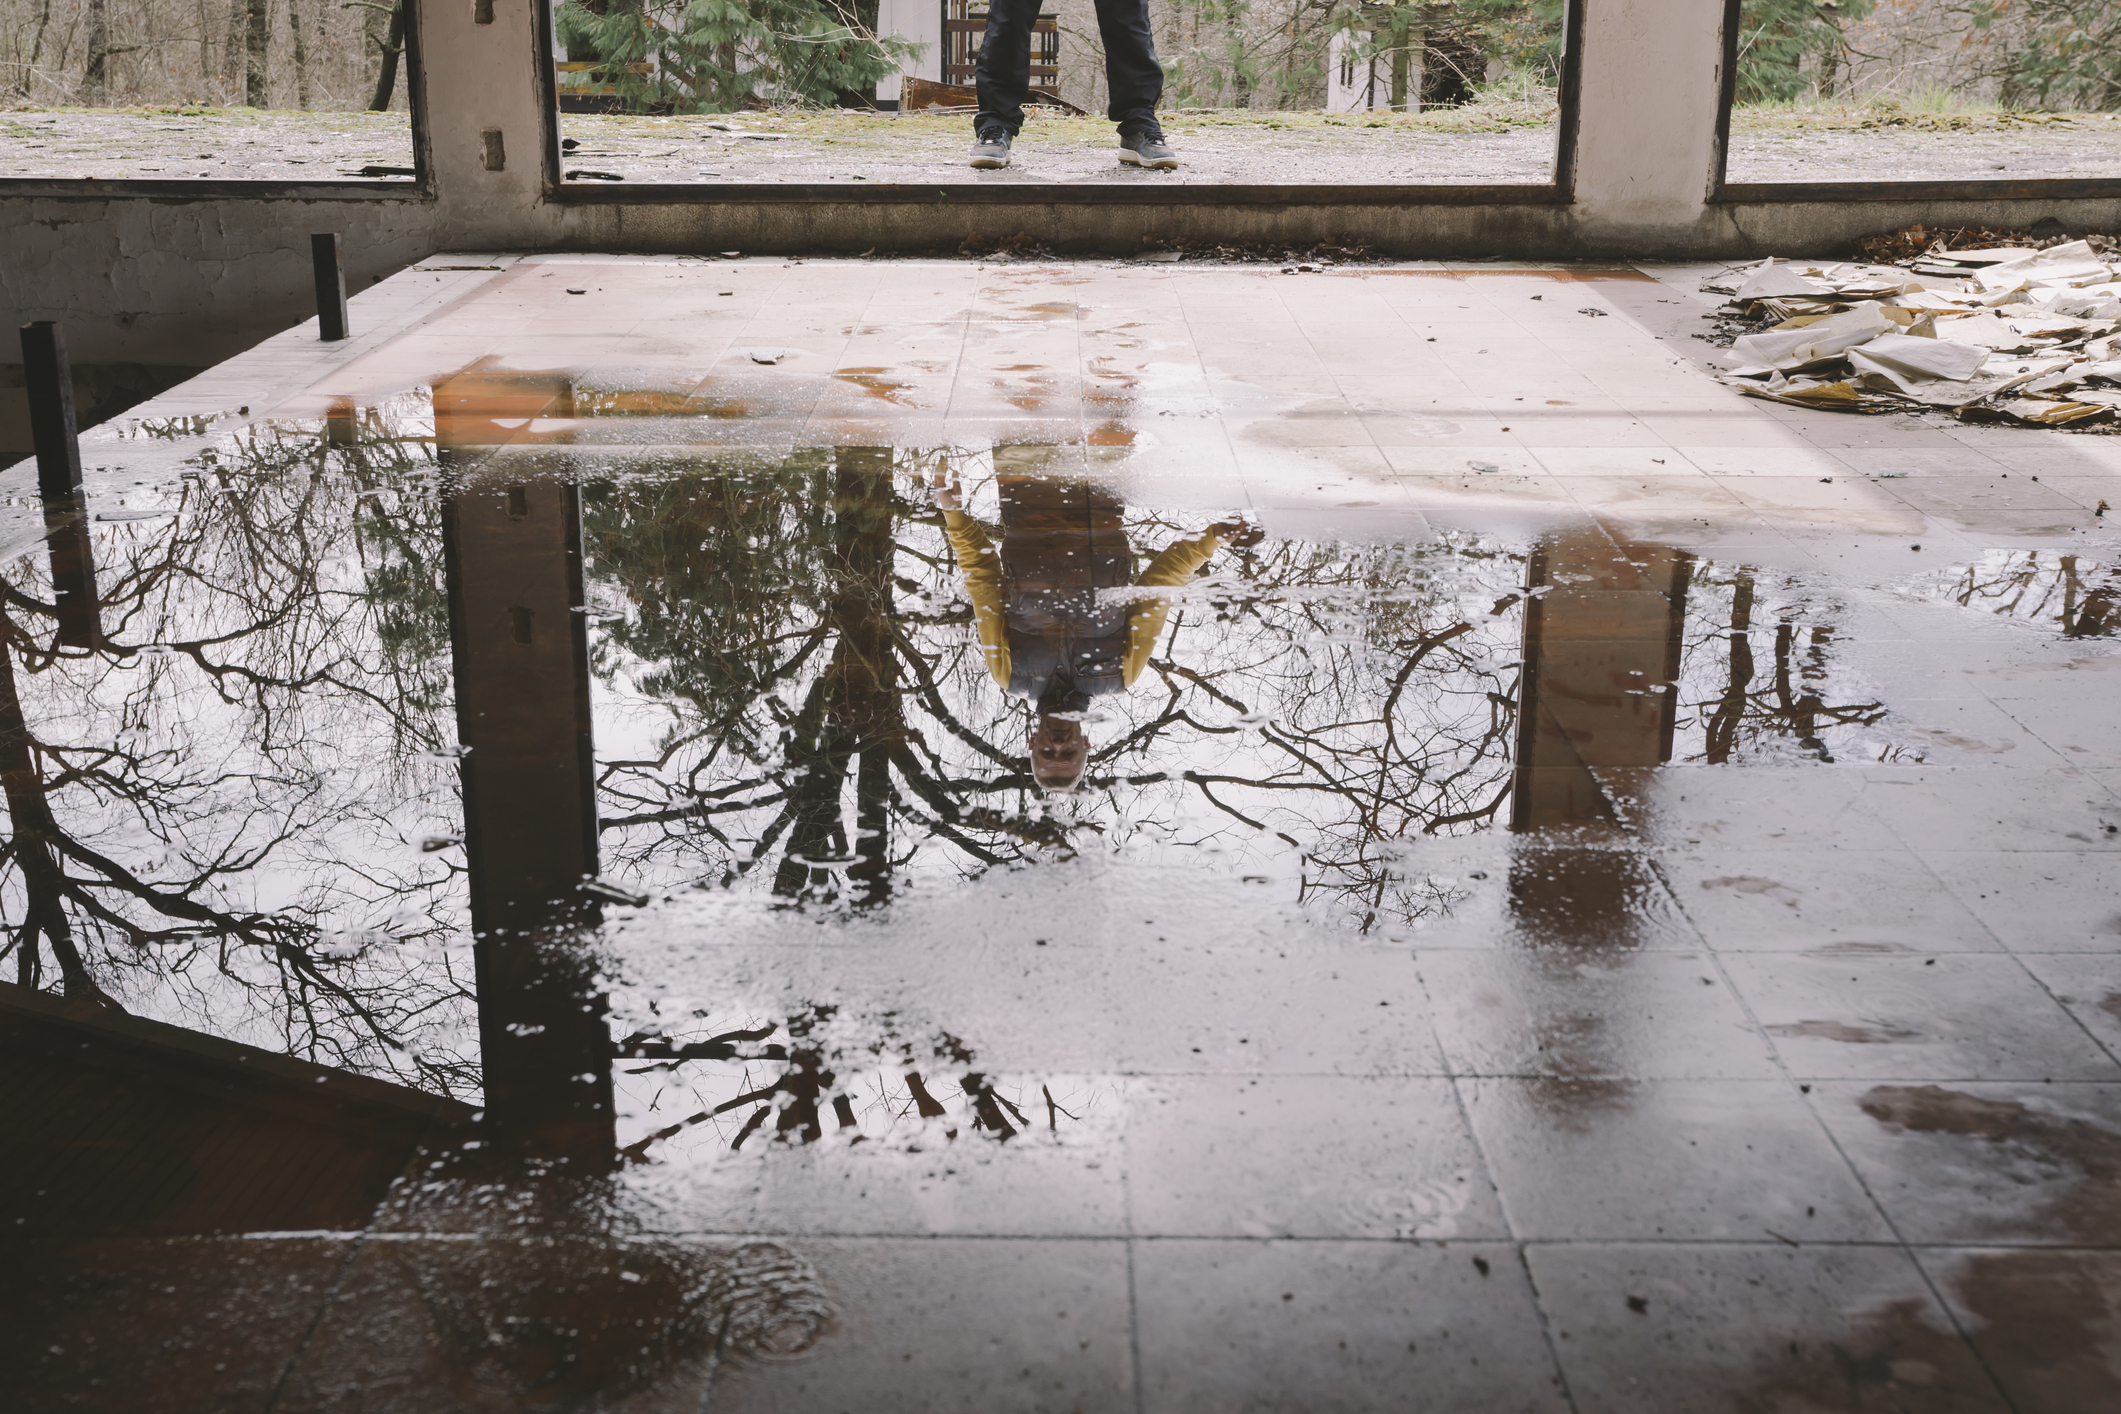 An image of a flooded house. Home Living Construction can repair water damage like this to your home.